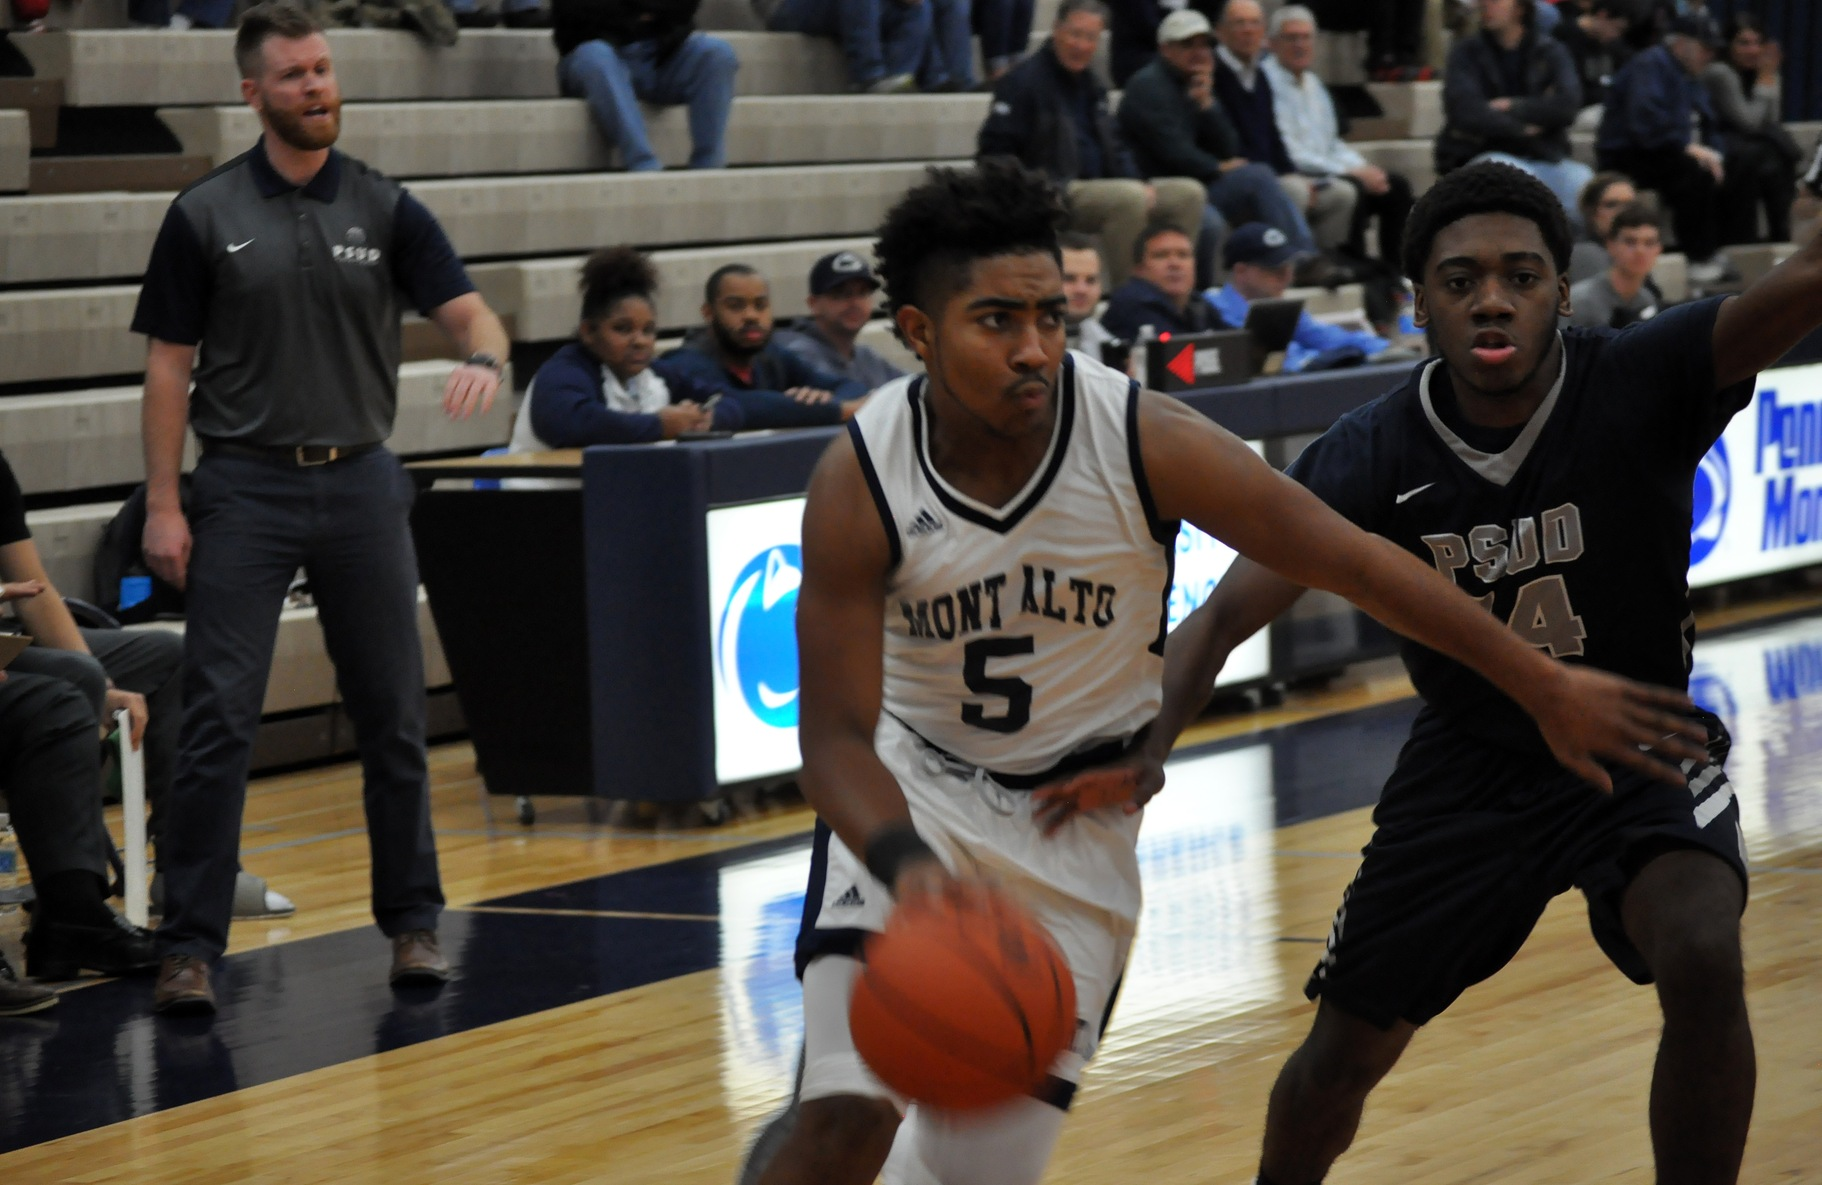 Men's Basketball Game Halts Three-Game Skid With Win Over PSU DuBois